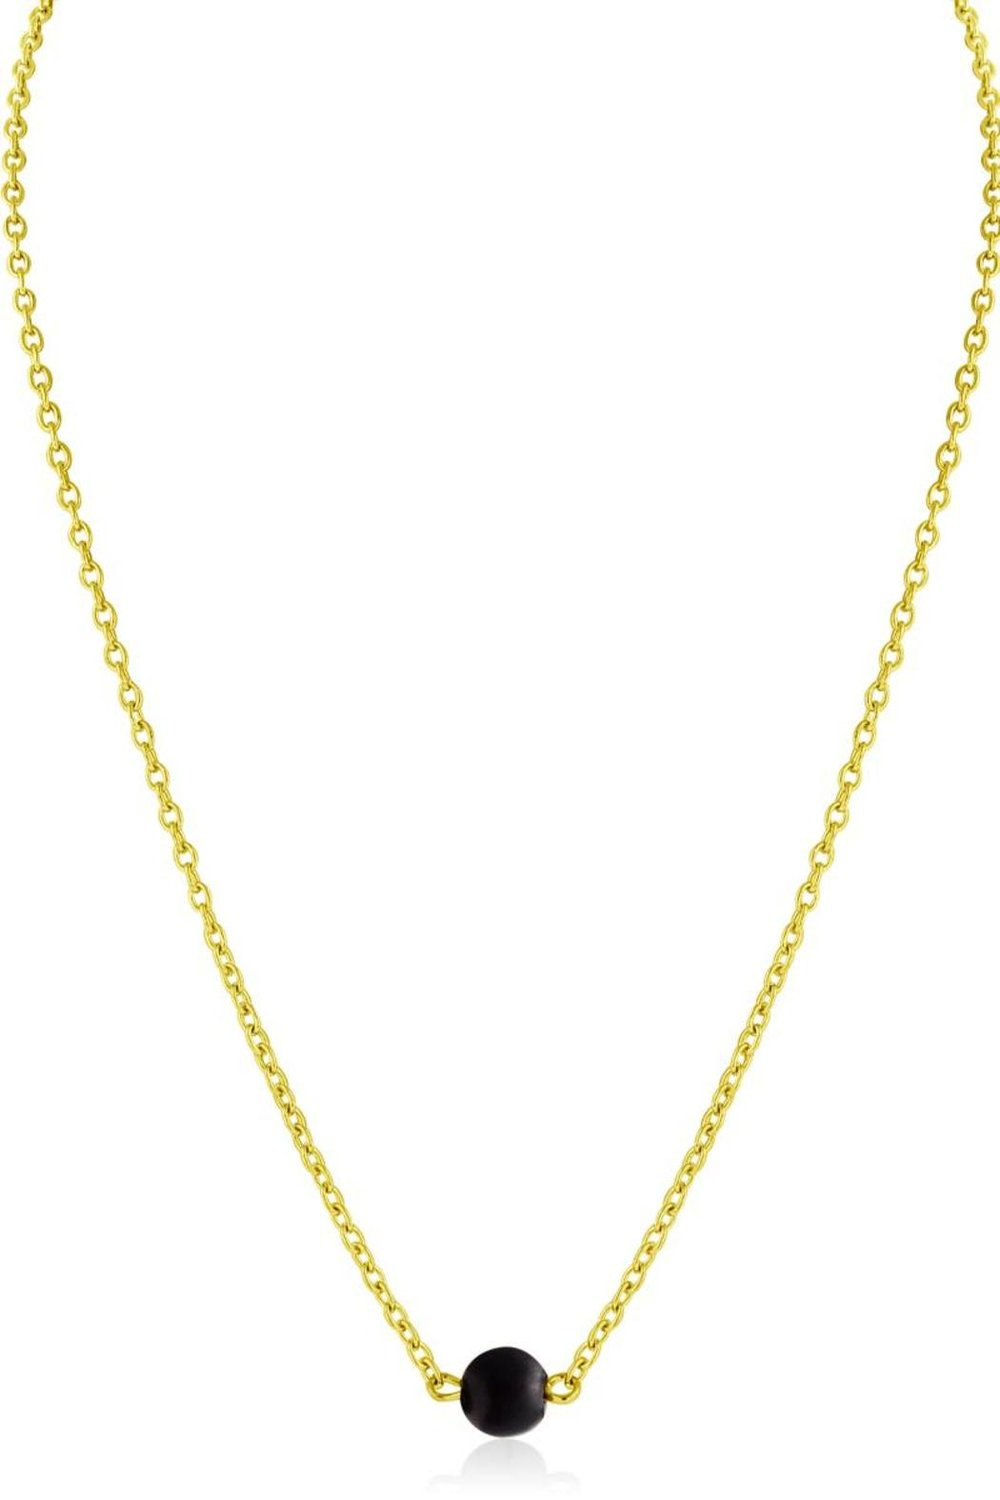 passiana-dainty-onyx-necklace-black-825971be_l.jpg